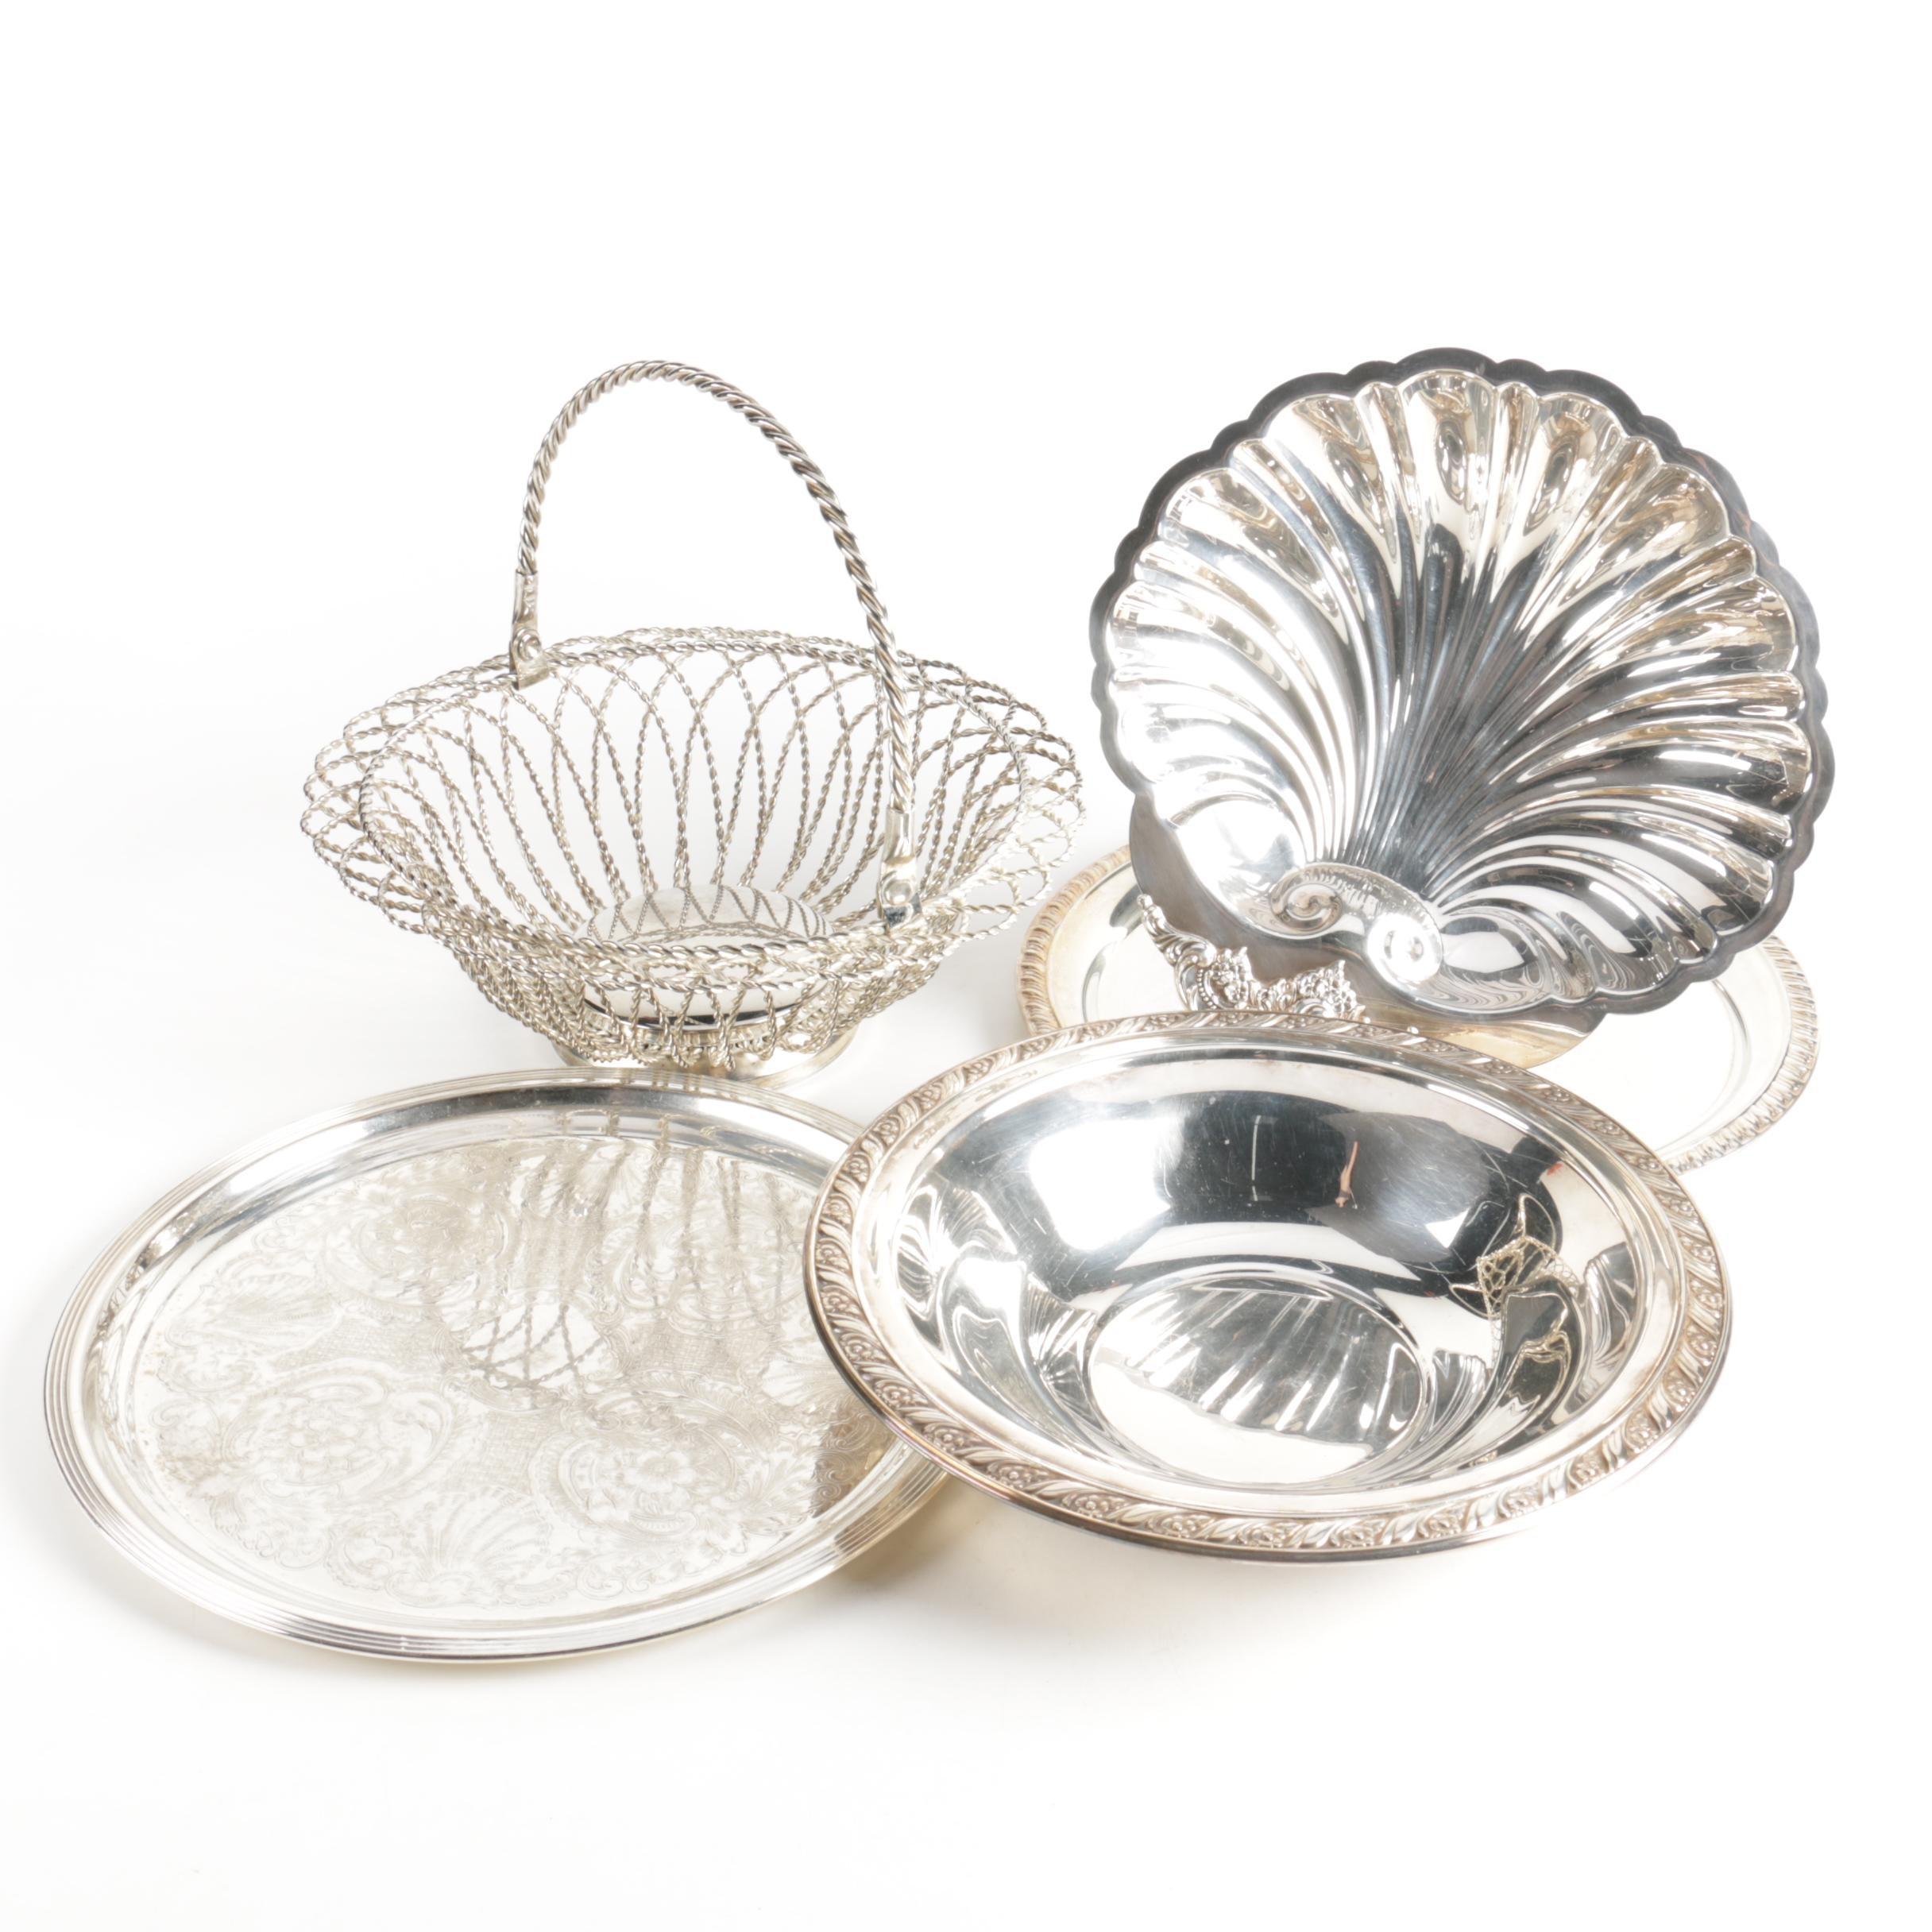 """Wallce """"Baroque"""" Shell Dish and Other Silver Plate Servingware"""